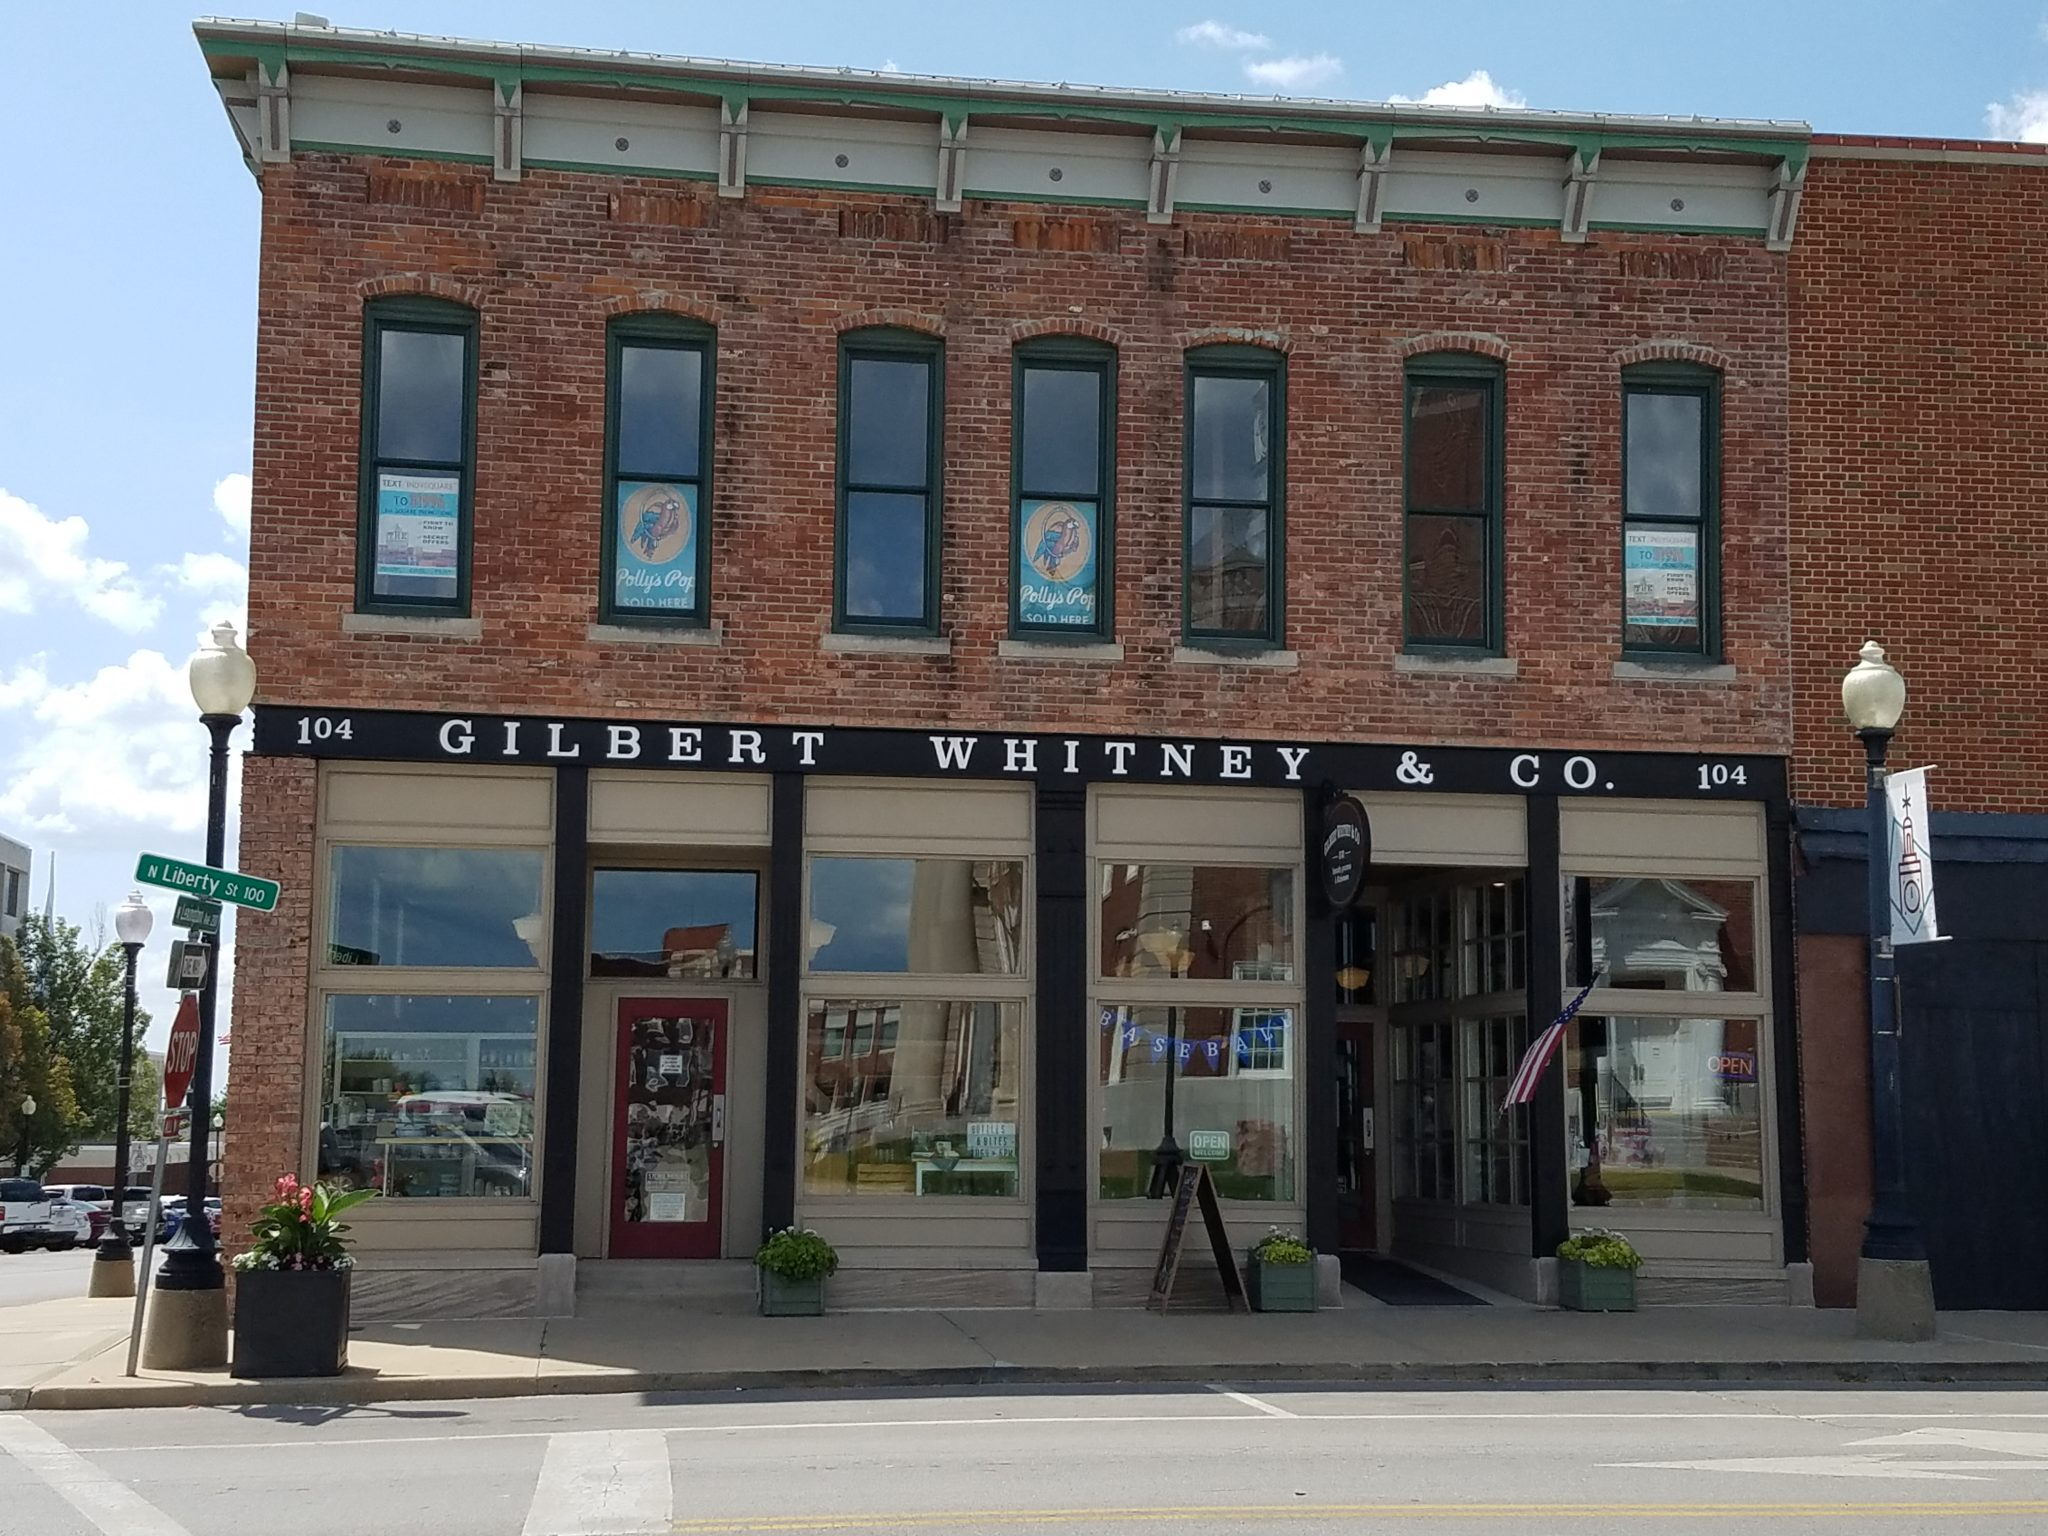 The Gilbert Whitney storefront in Independence, MO